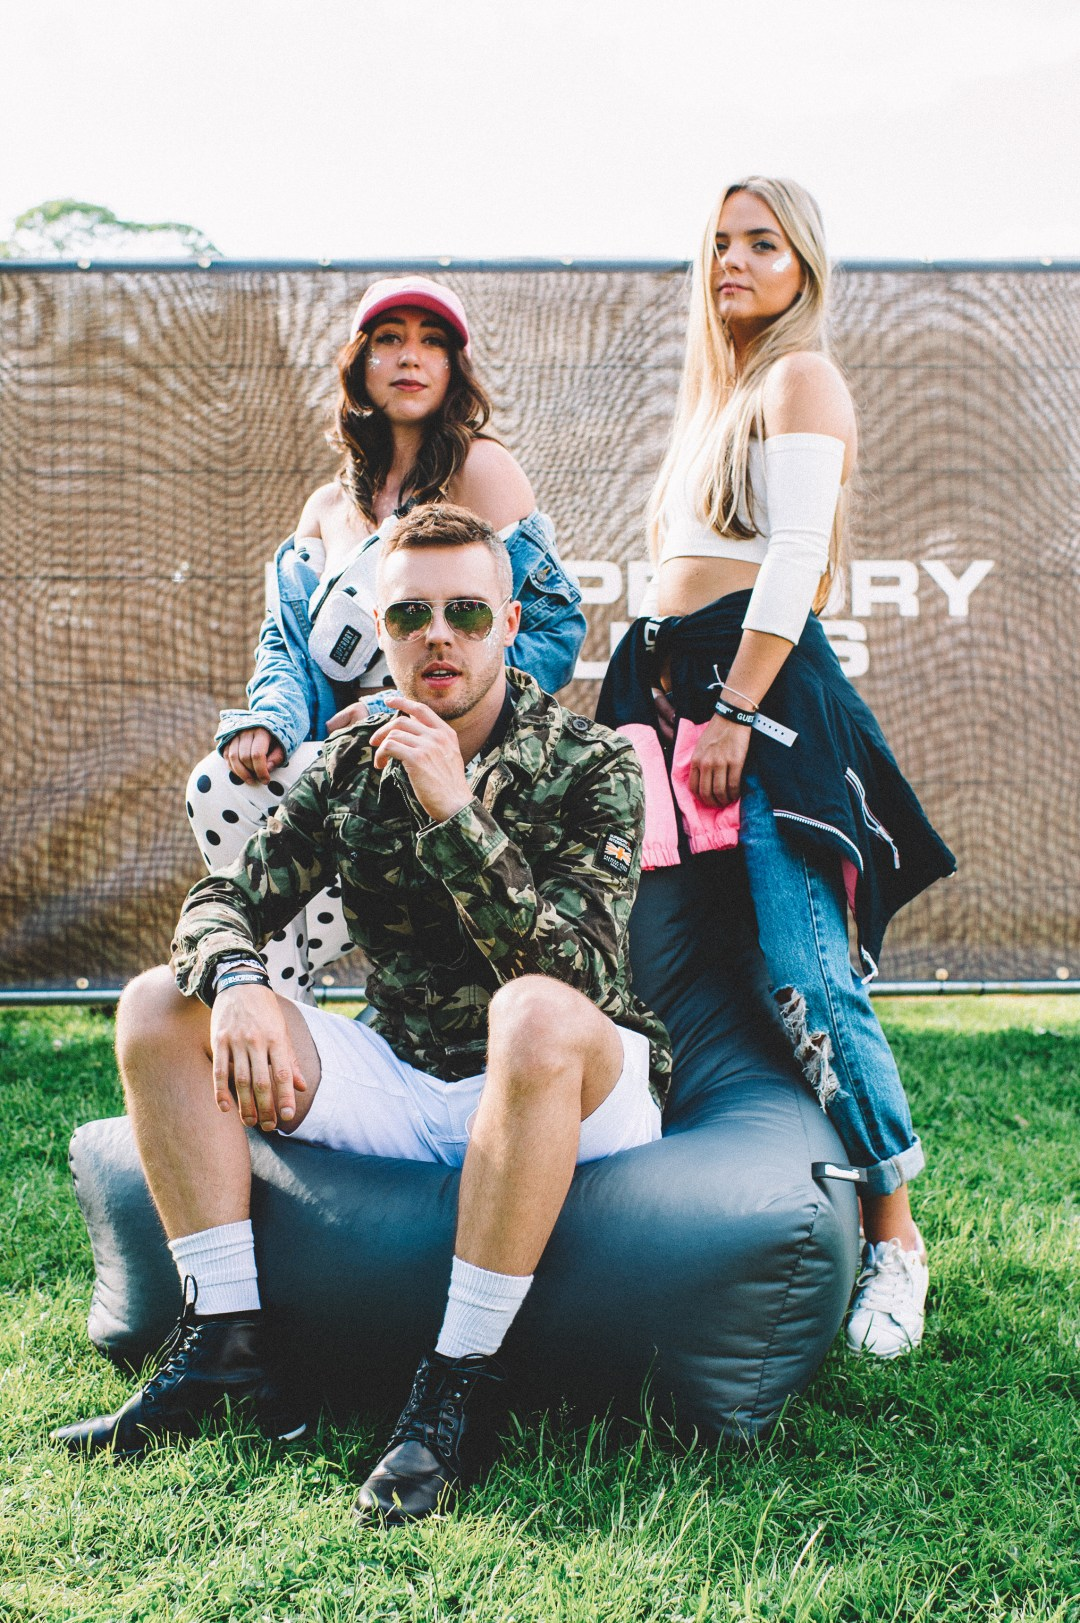 Field Day Festival 2018. SuperDry Sounds backstage featuring Hannah Jane Lewis and Au/Ra. Blog by Skirmantas Petraitis.